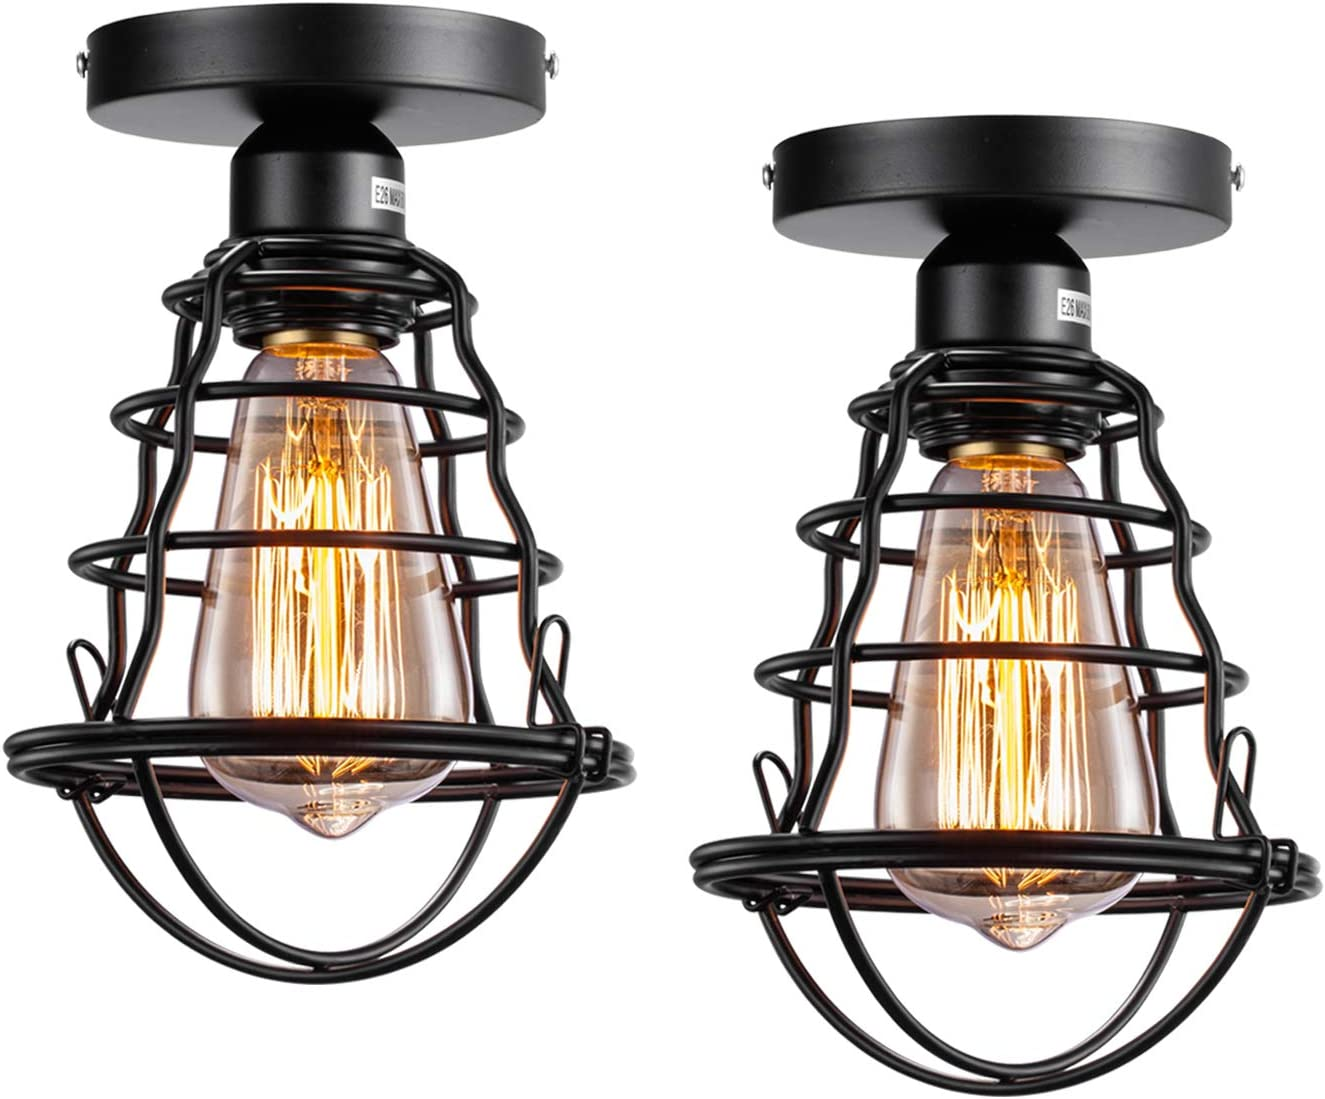 Vintage Semi Flush Mount Ceiling Light E26 E27 Base Edison Rustic Antique Metal Caged Industrial Ceiling Light Fixture For Hallway Porch Bathroom Stairway Bedroom Kitchen 2 Pack Amazon Com